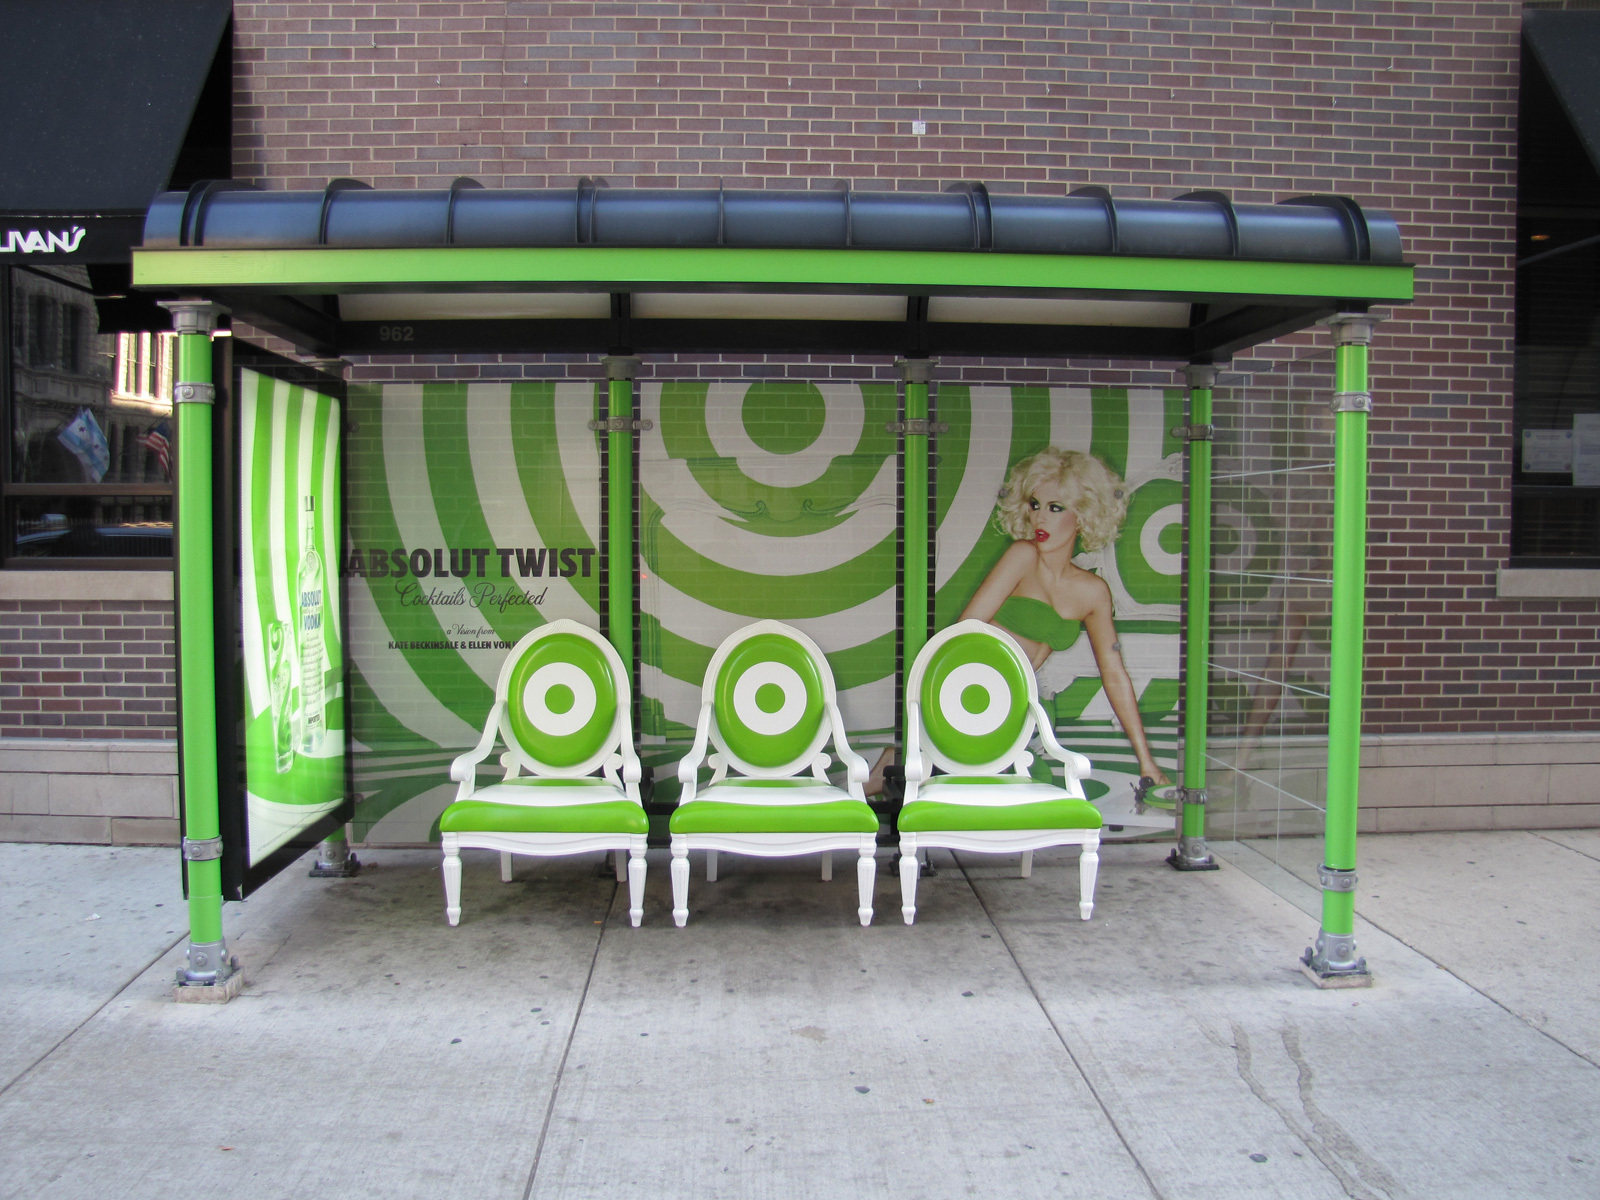 absolut-bloody-bus-stop-twist-bus-stop-lemon-drop-bus-stop-outdoor-130637-adeevee.jpg